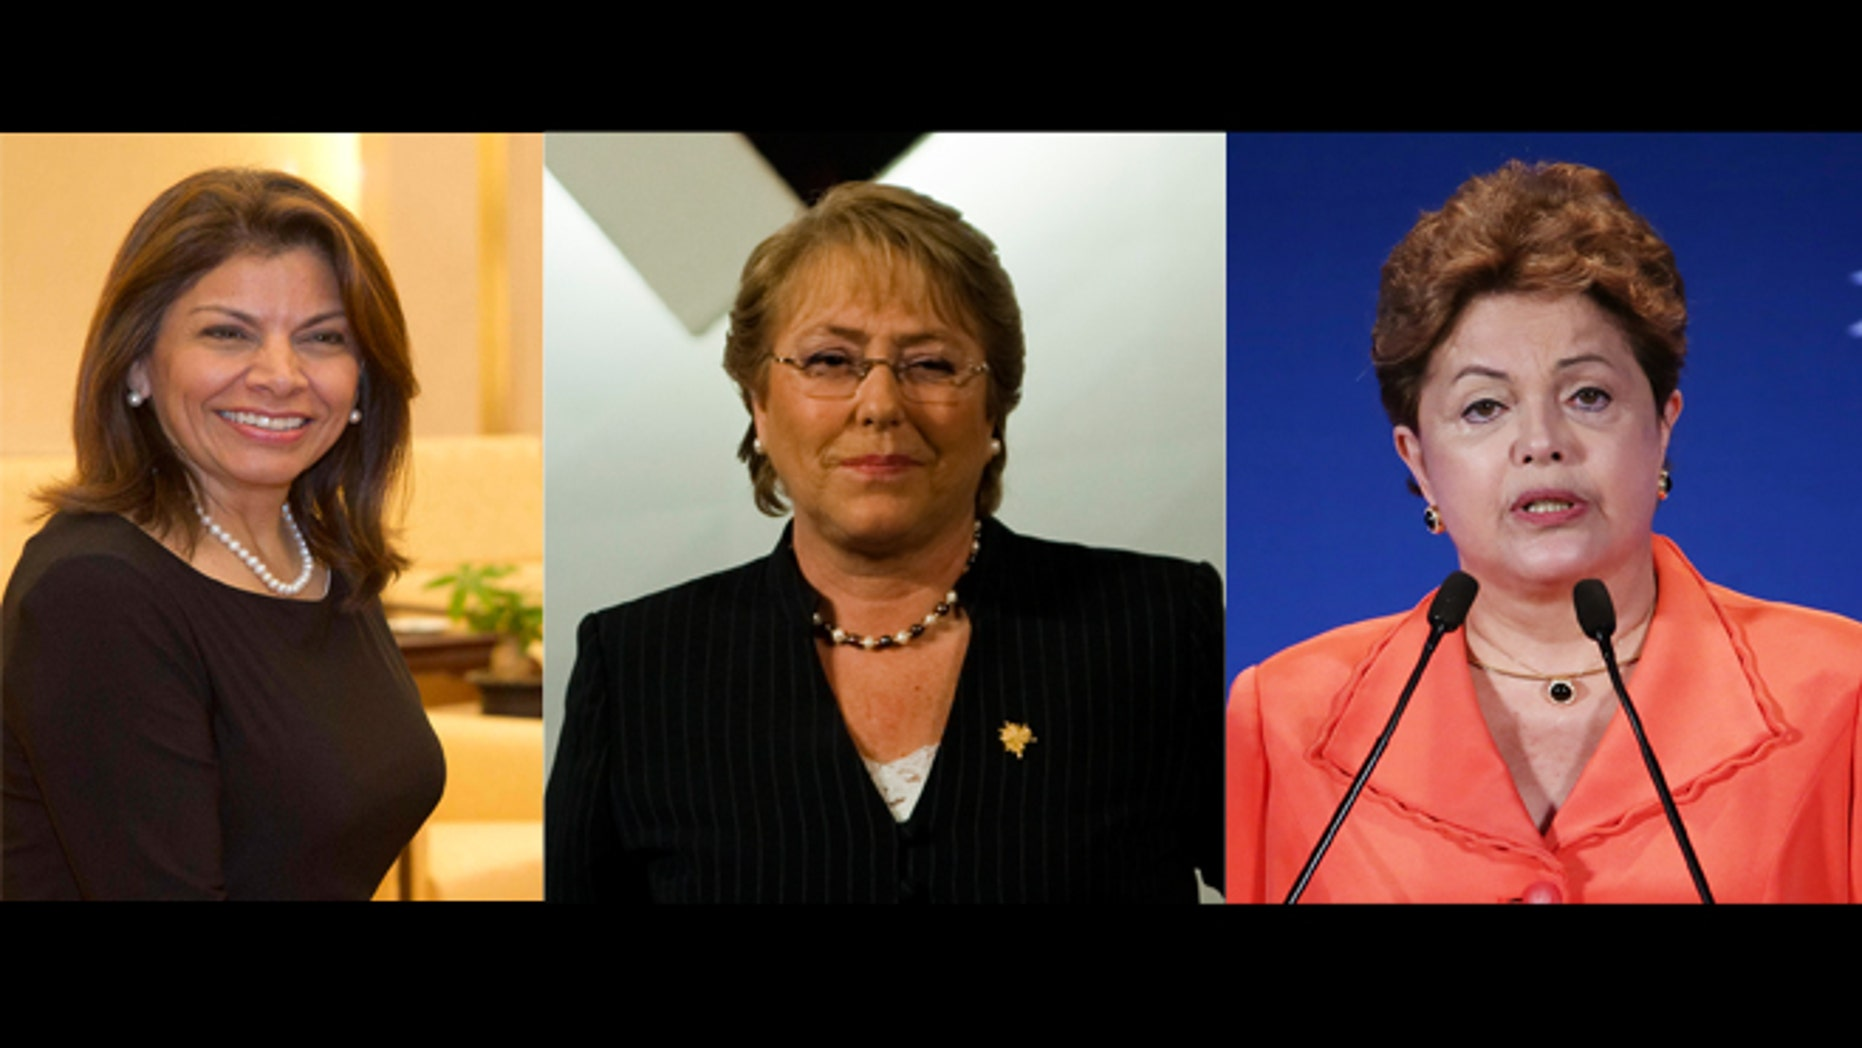 Costa Rican President Laura Chinchilla, Chilean President-Elect Michelle Bachelet and Brazilian President Dilma Rousseff.